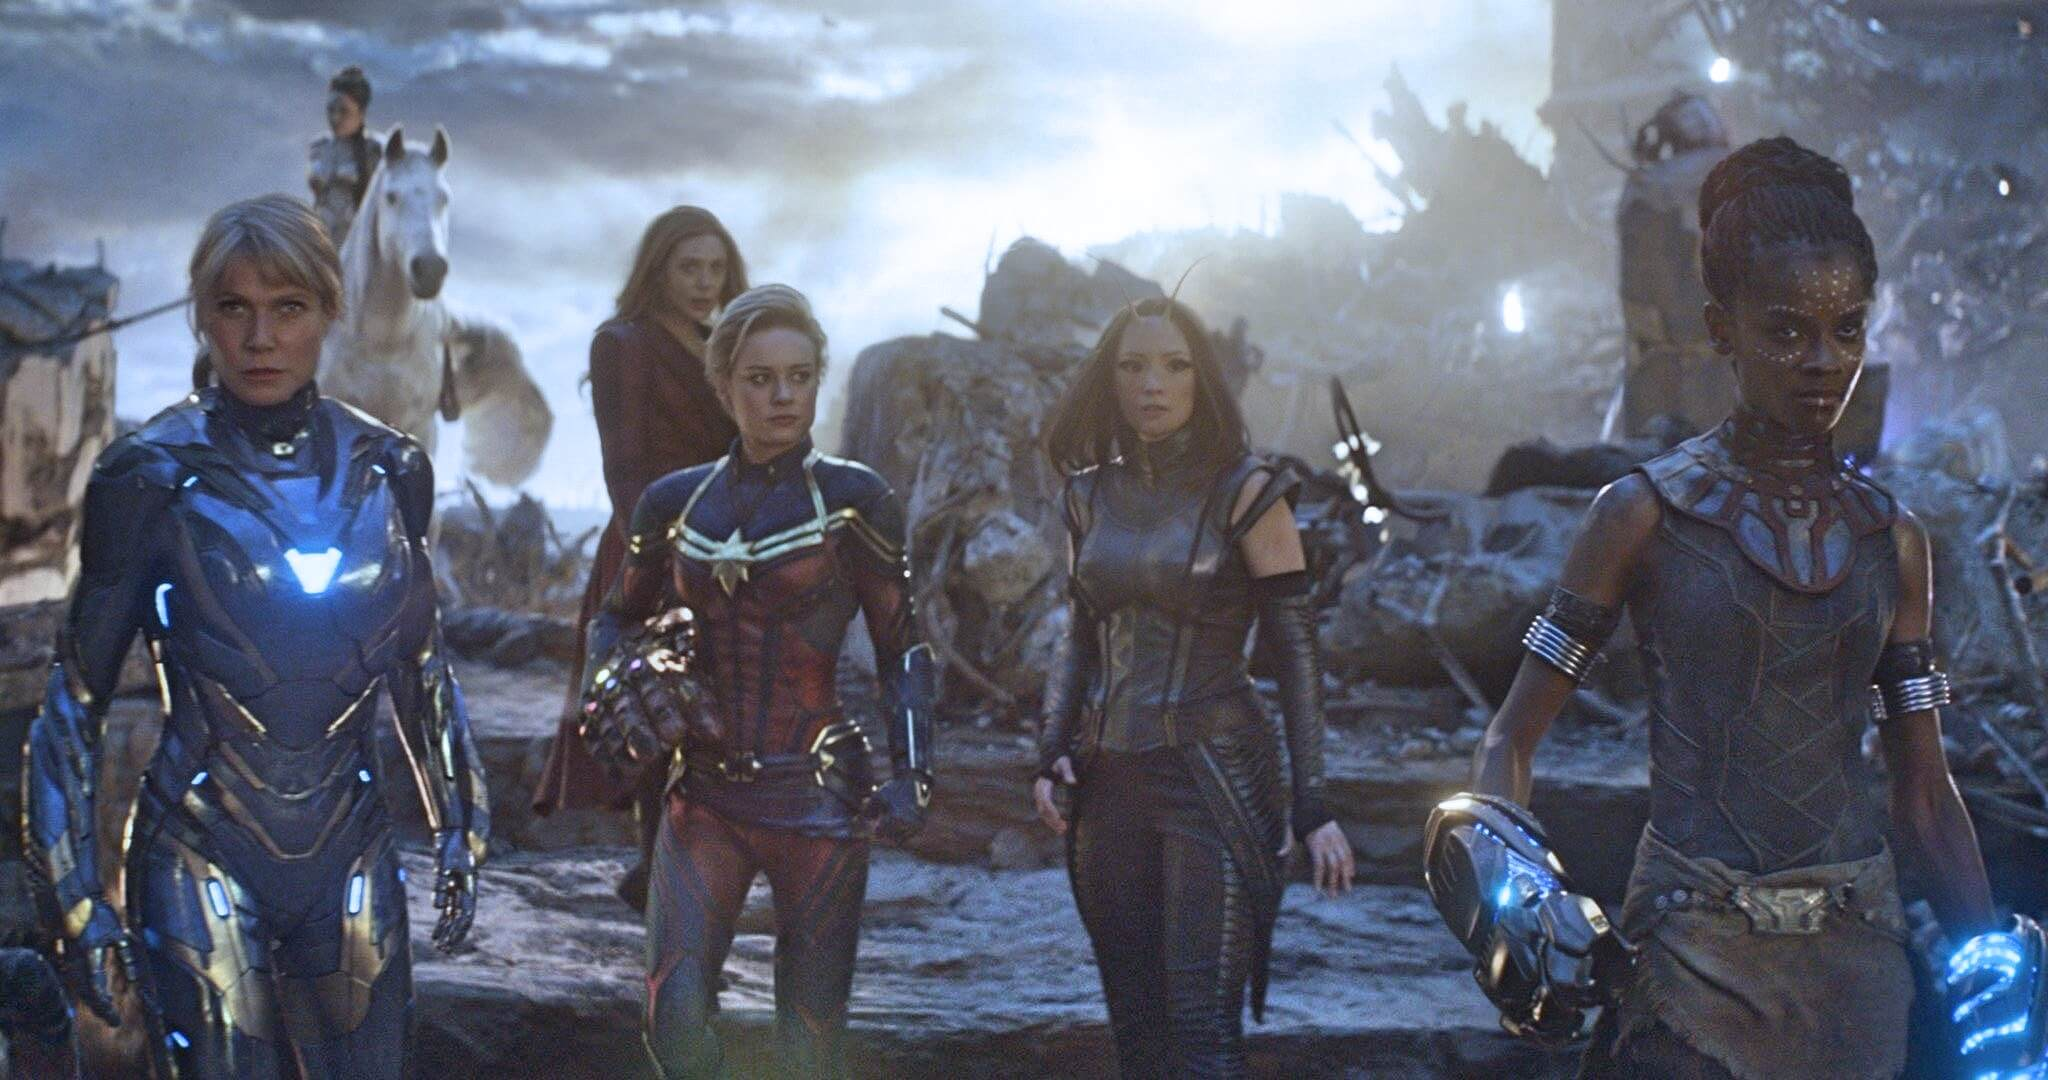 Upcoming Untitled Marvel Movie Release Dates A-Force